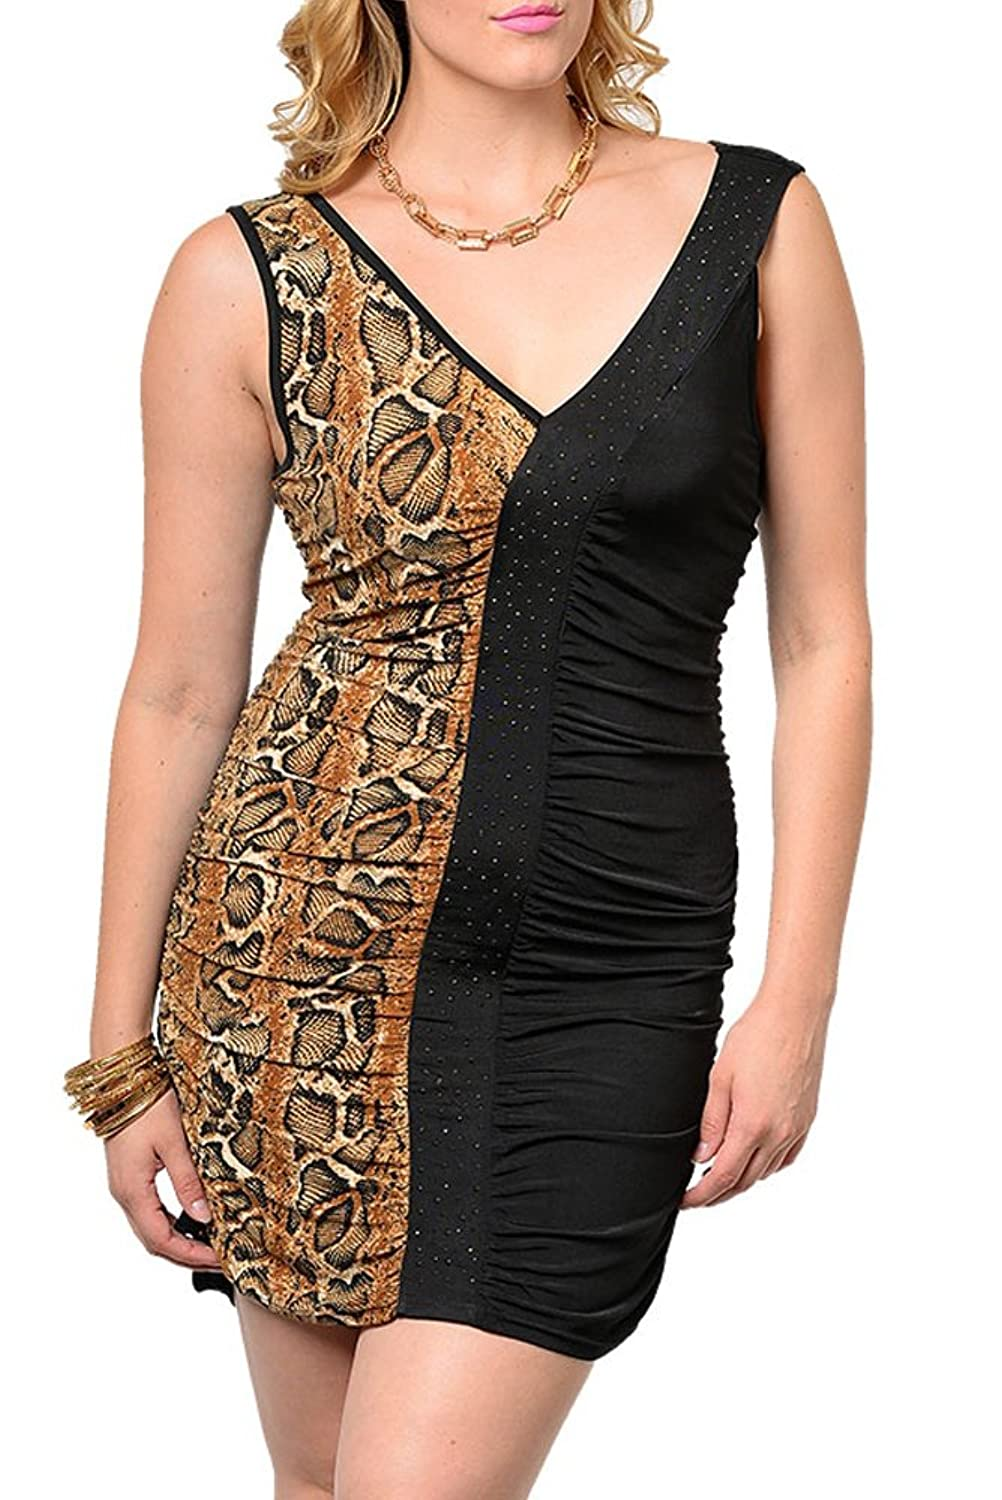 DHStyles Women's Plus Size Sexy Cinched Animal Print Jeweled Dress